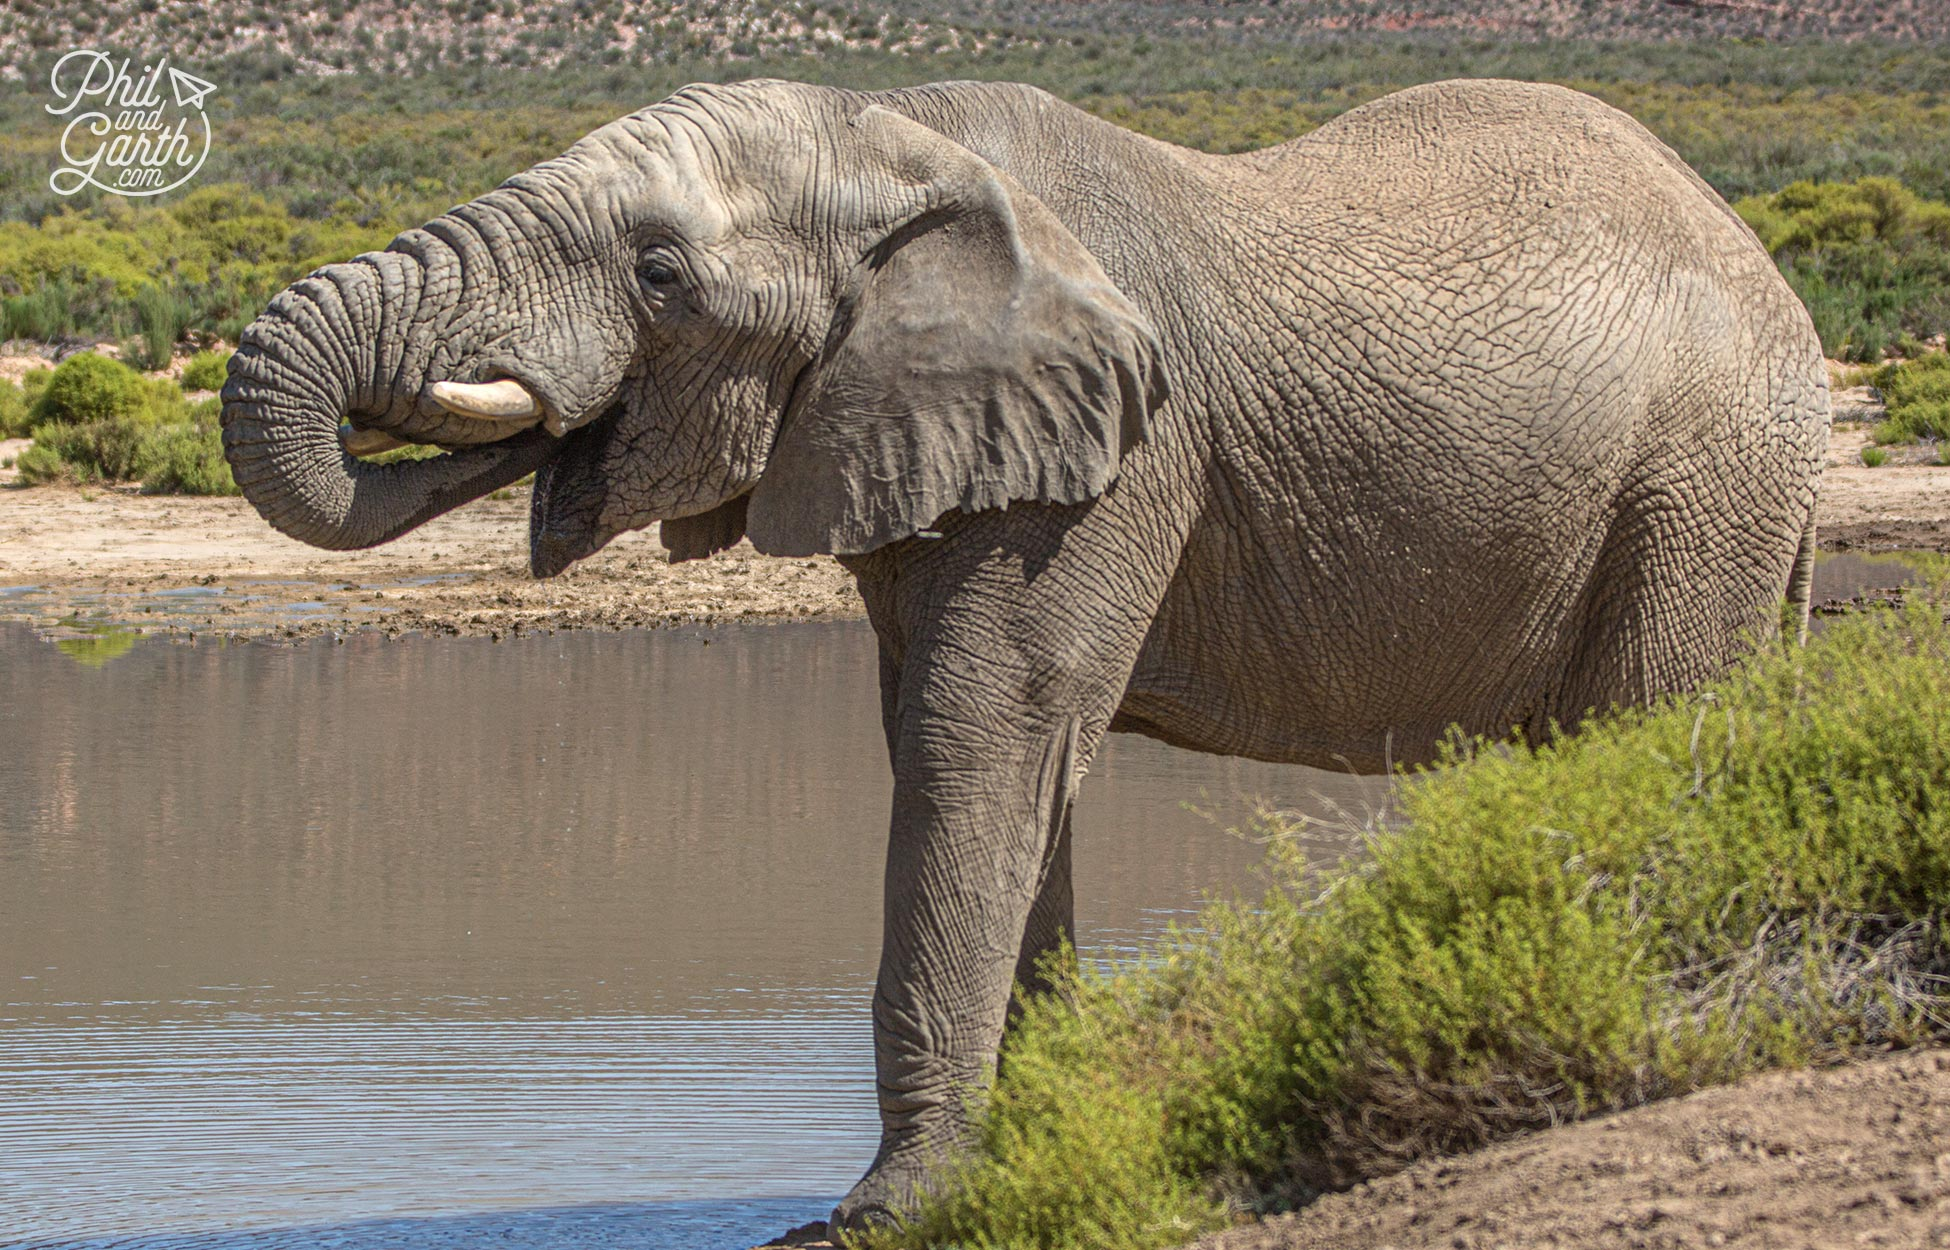 An elephant drinking some water at the lake